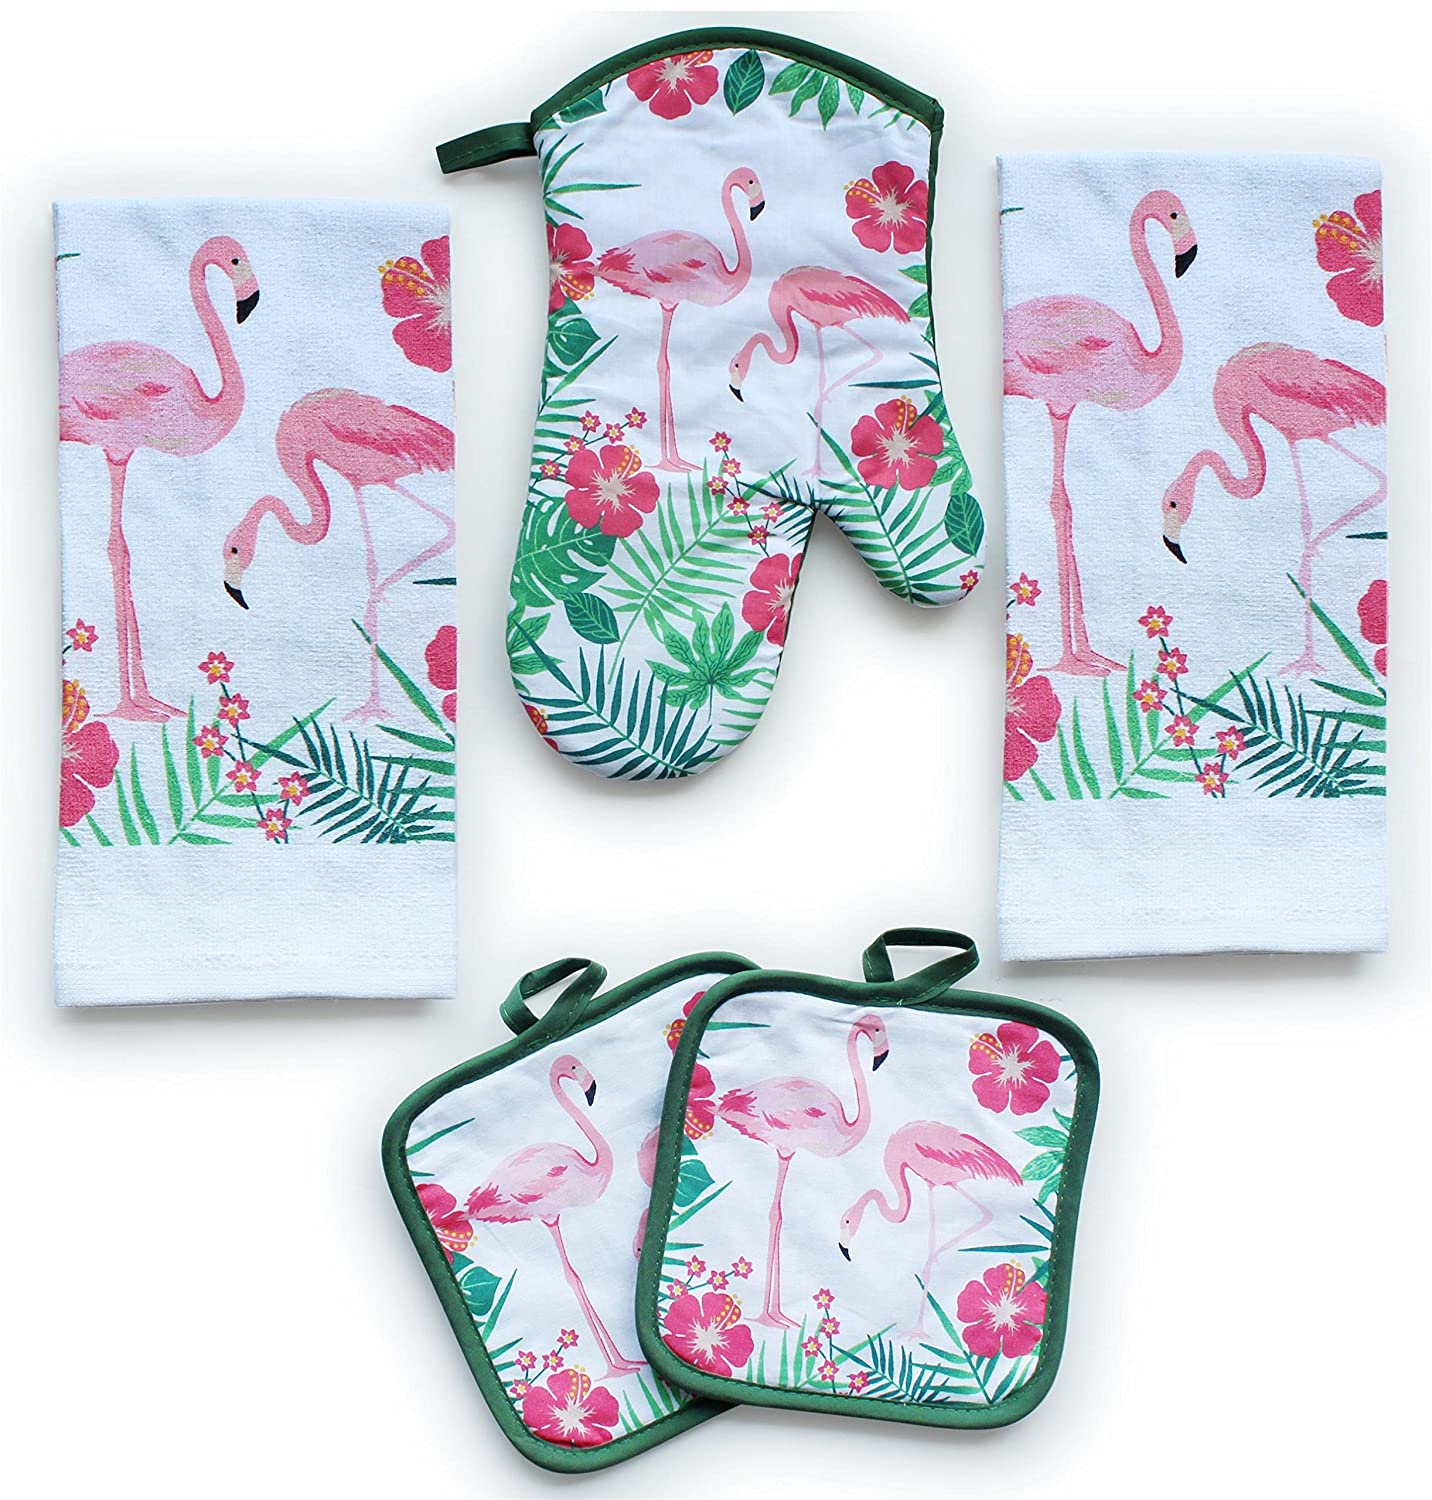 American Mills Kitchen Towel Set 5 Piece Towels Pot Holders Oven Mitt Decorative Sailboats A.Mills